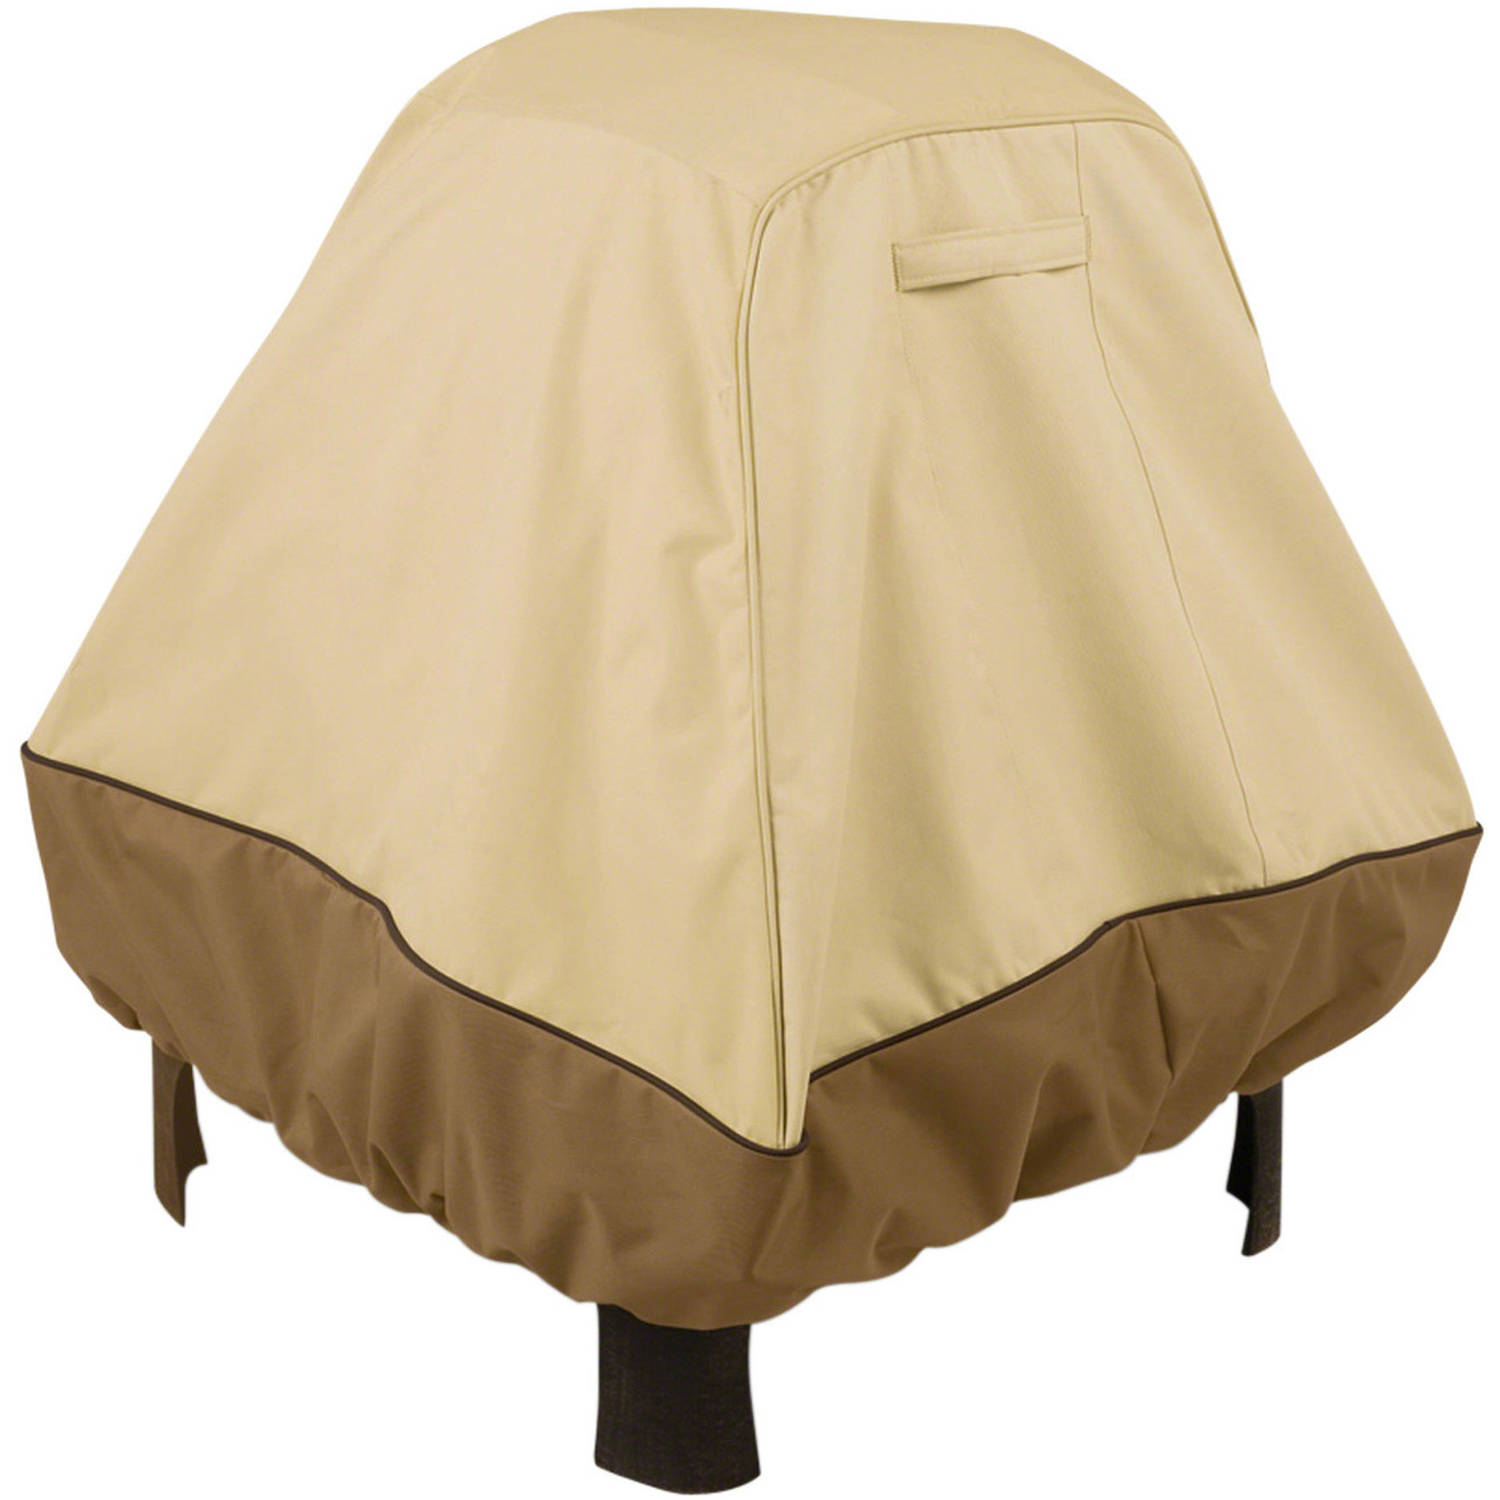 "Classic Accessories Veranda Stand-Up Fire Pit Cover, fits up to 35.5""L x 35.5""W"